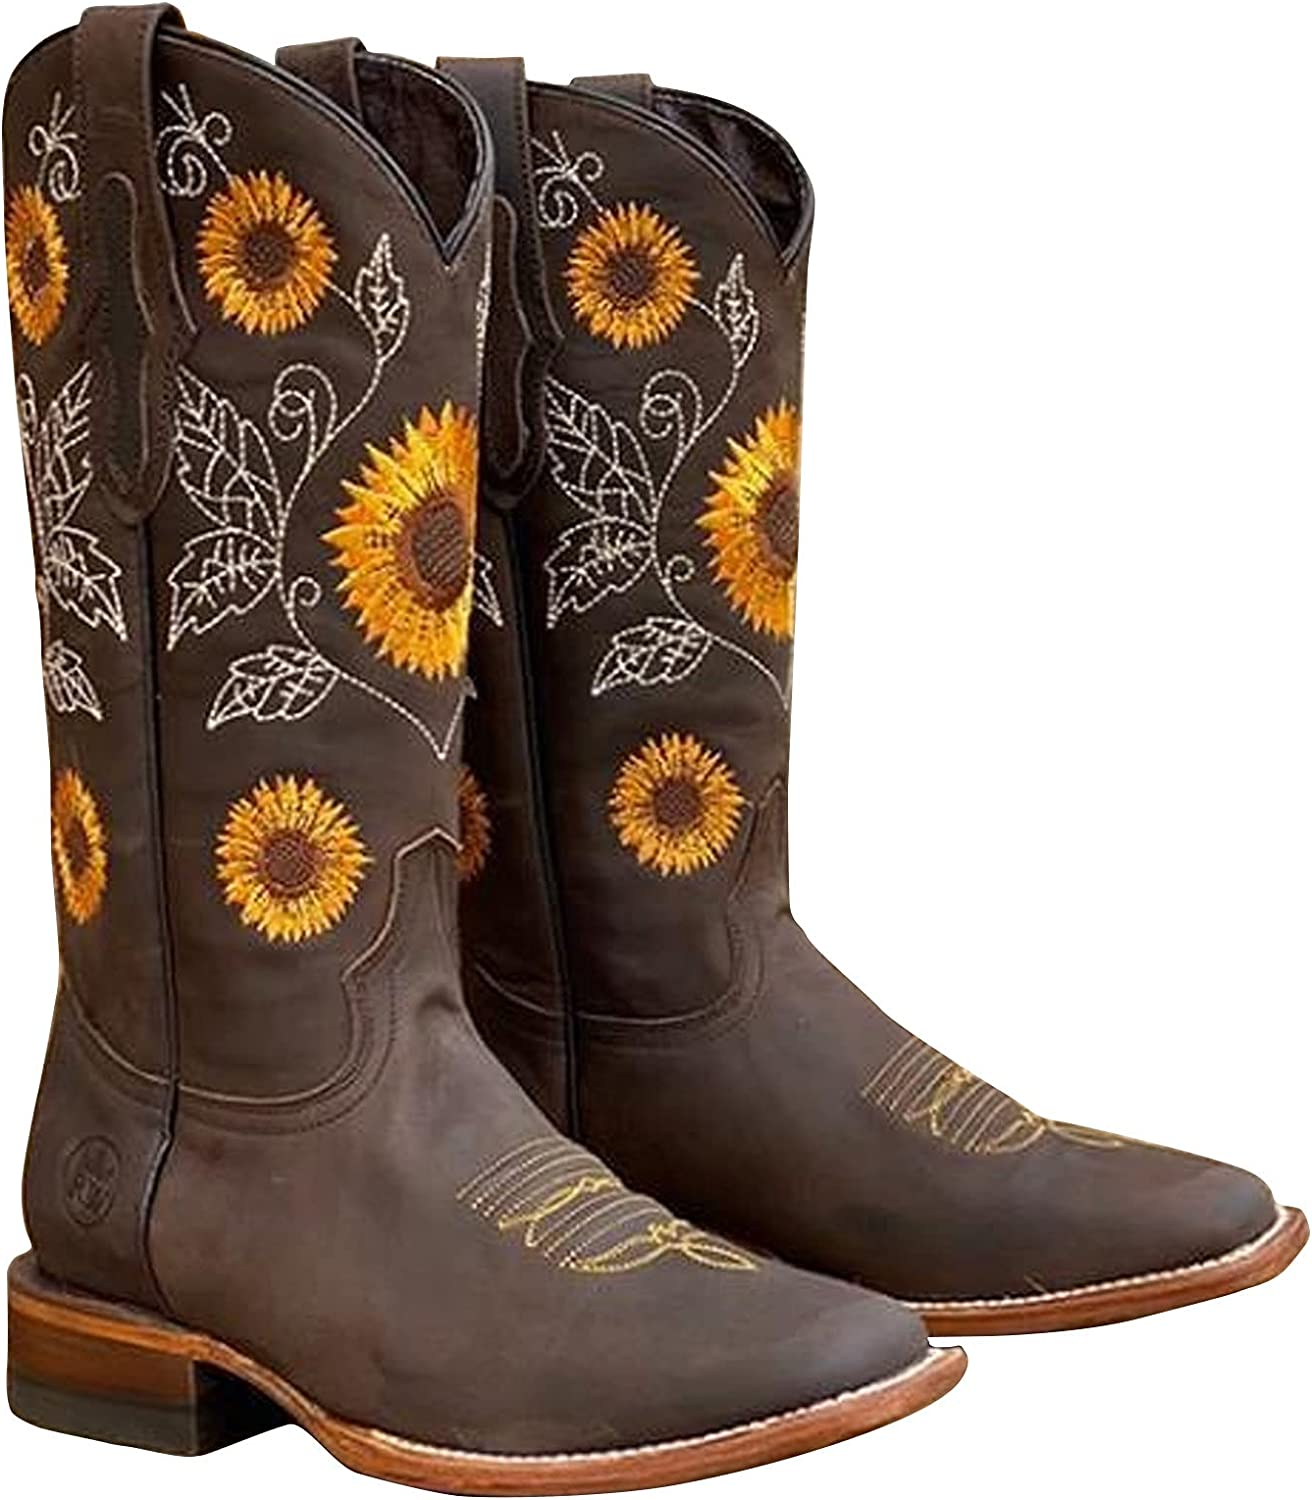 Boots For Women Fashion Embroidered Luxury goods Boo Western New mail order Sunflower Cowboy